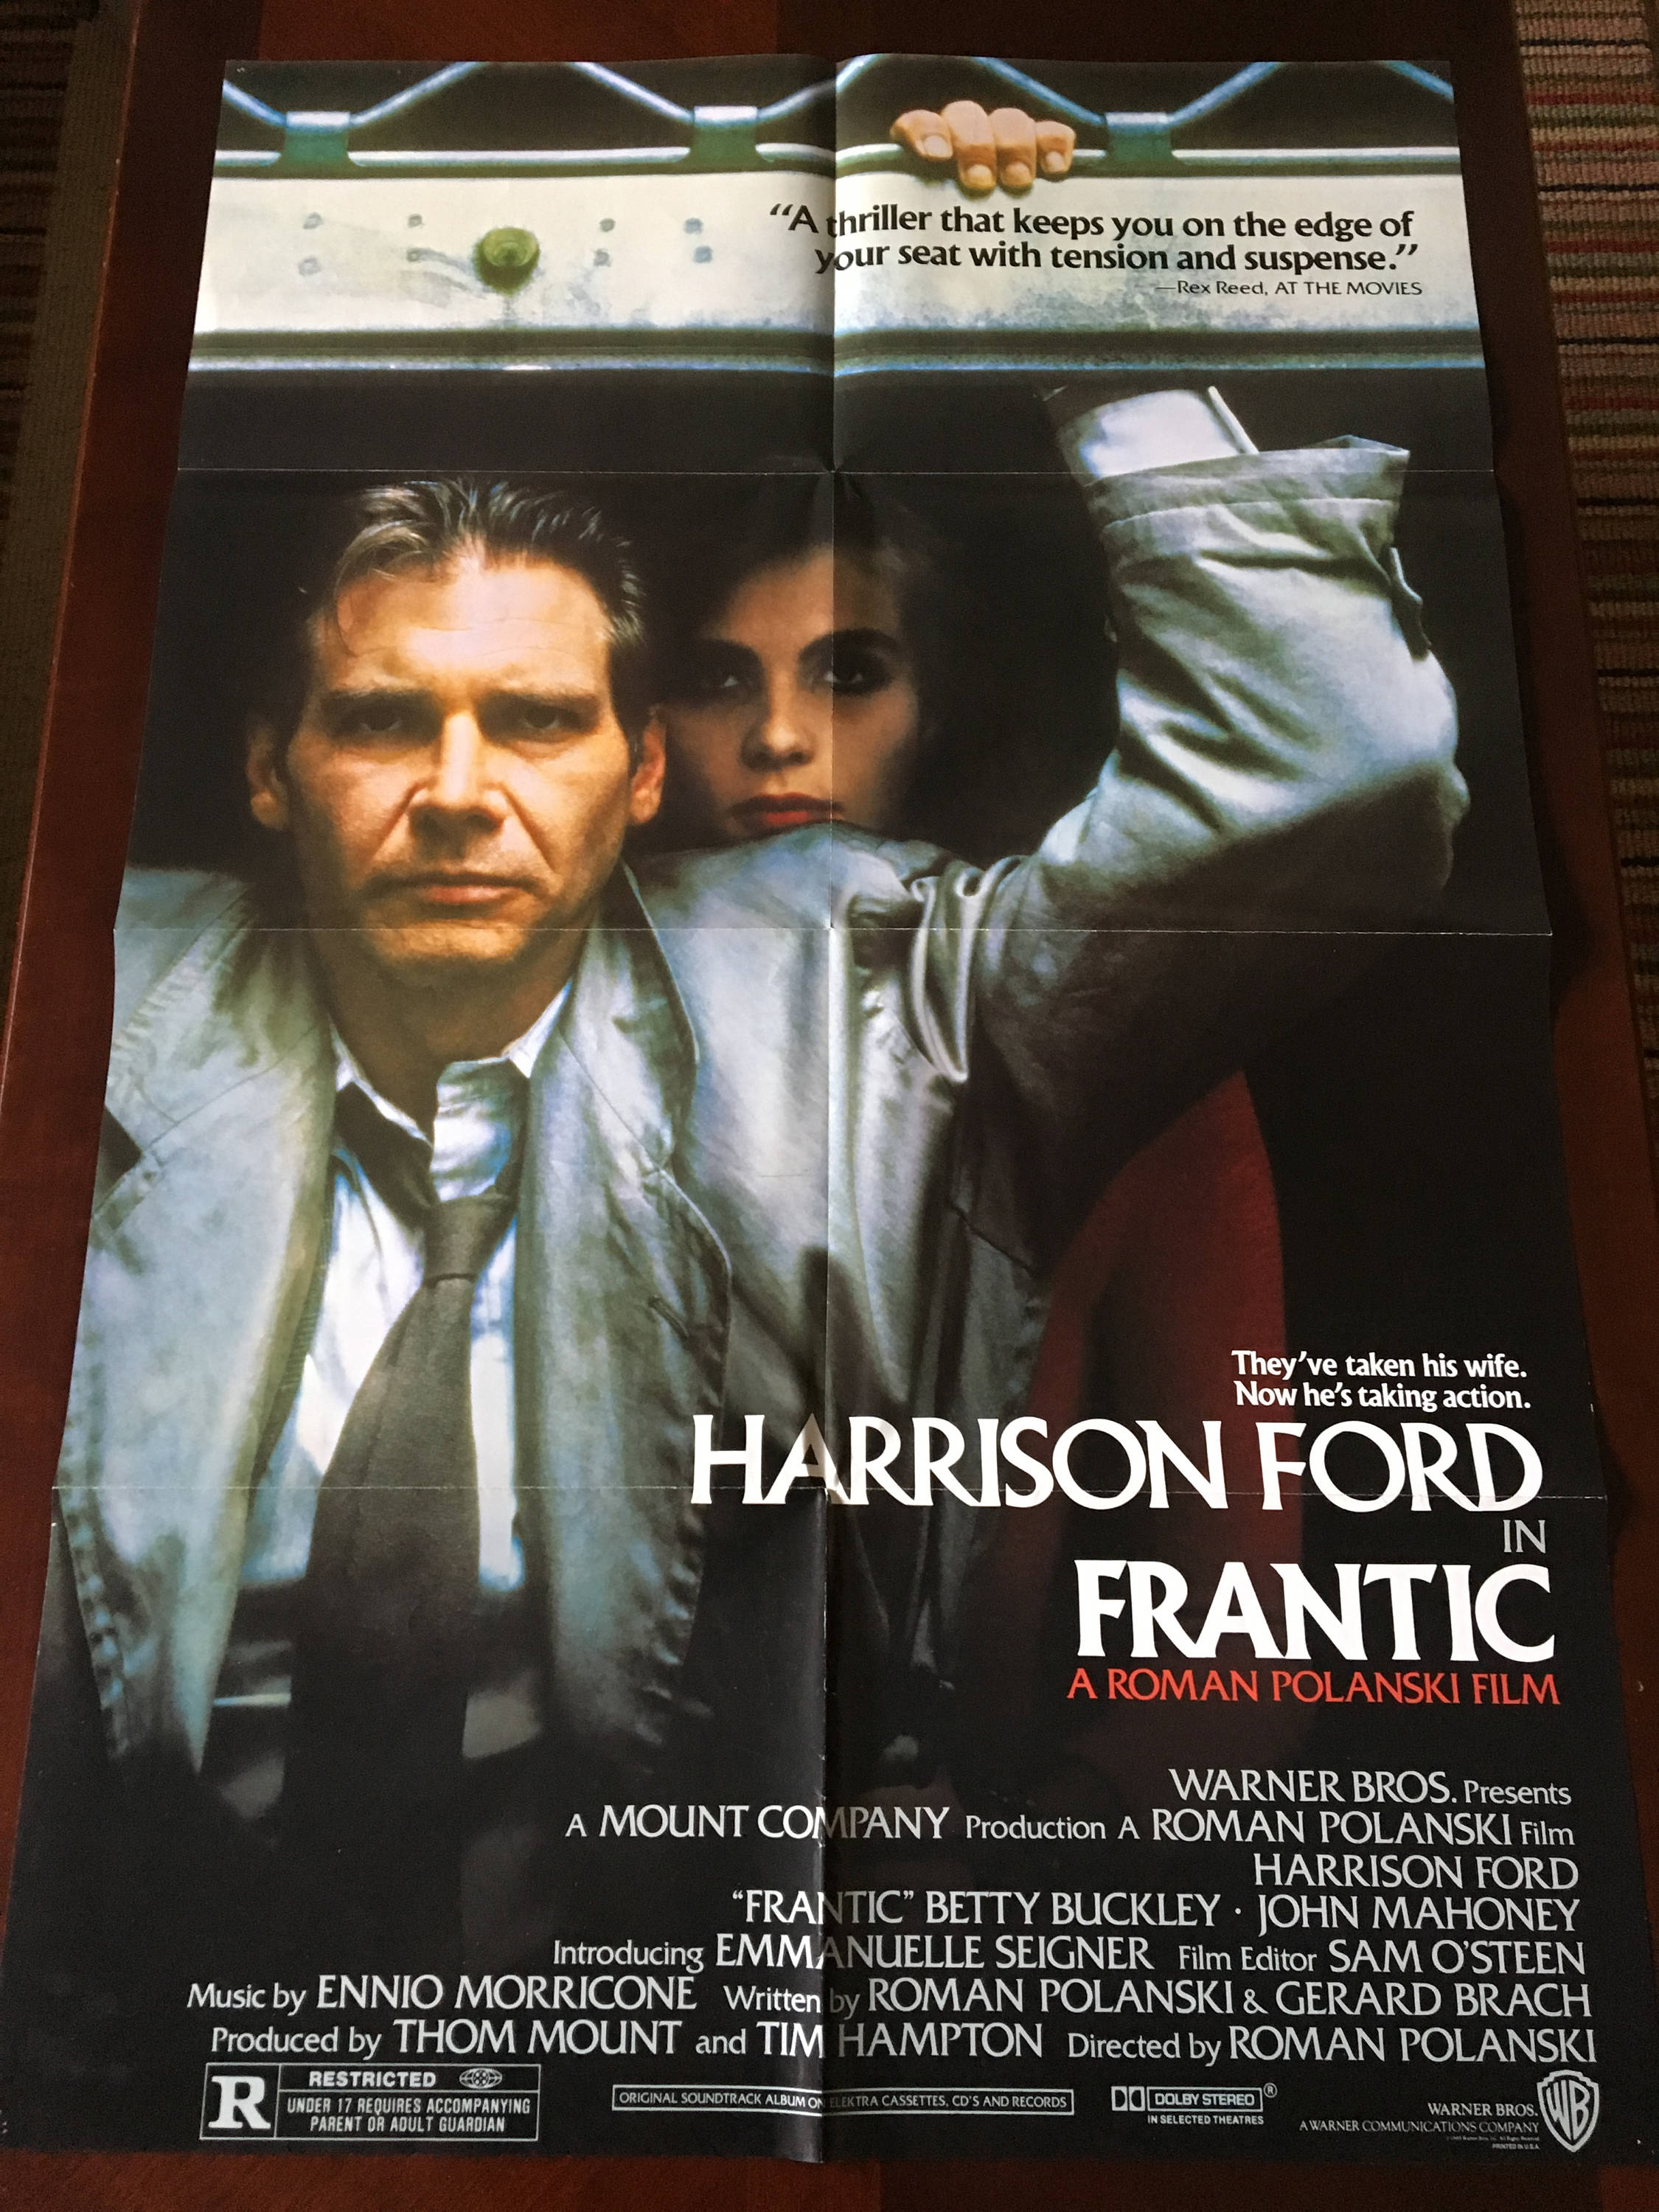 Movie Poster, Frantic directed by Roman Polanski with Harrison Ford